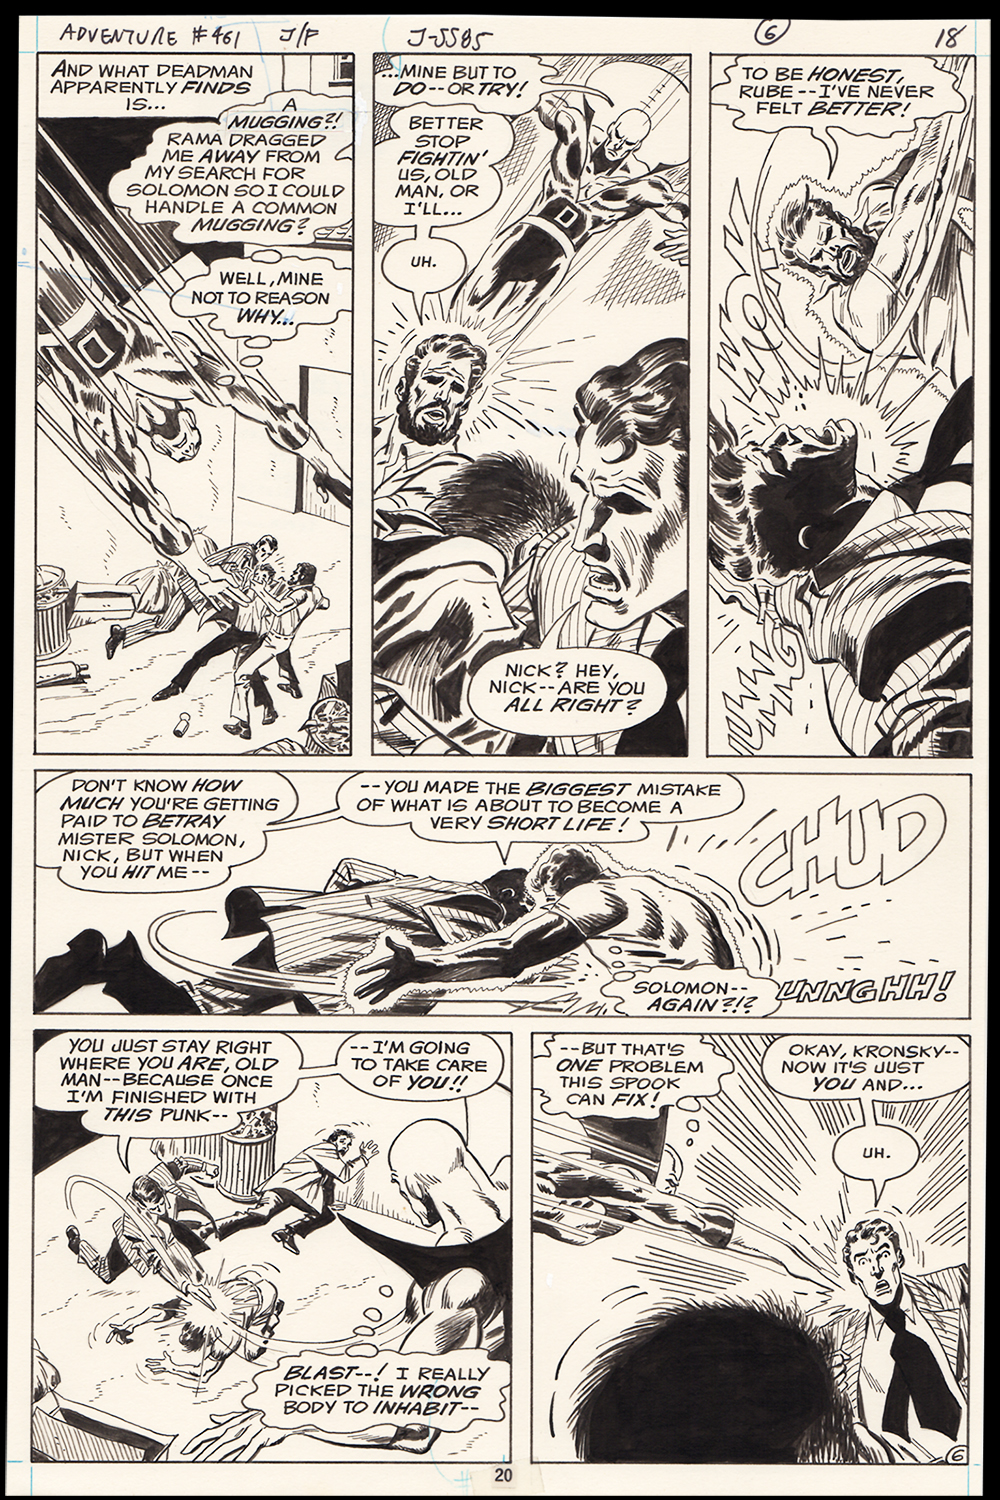 Image: Adventure Comics #461 page 6 art by Jim Aparo